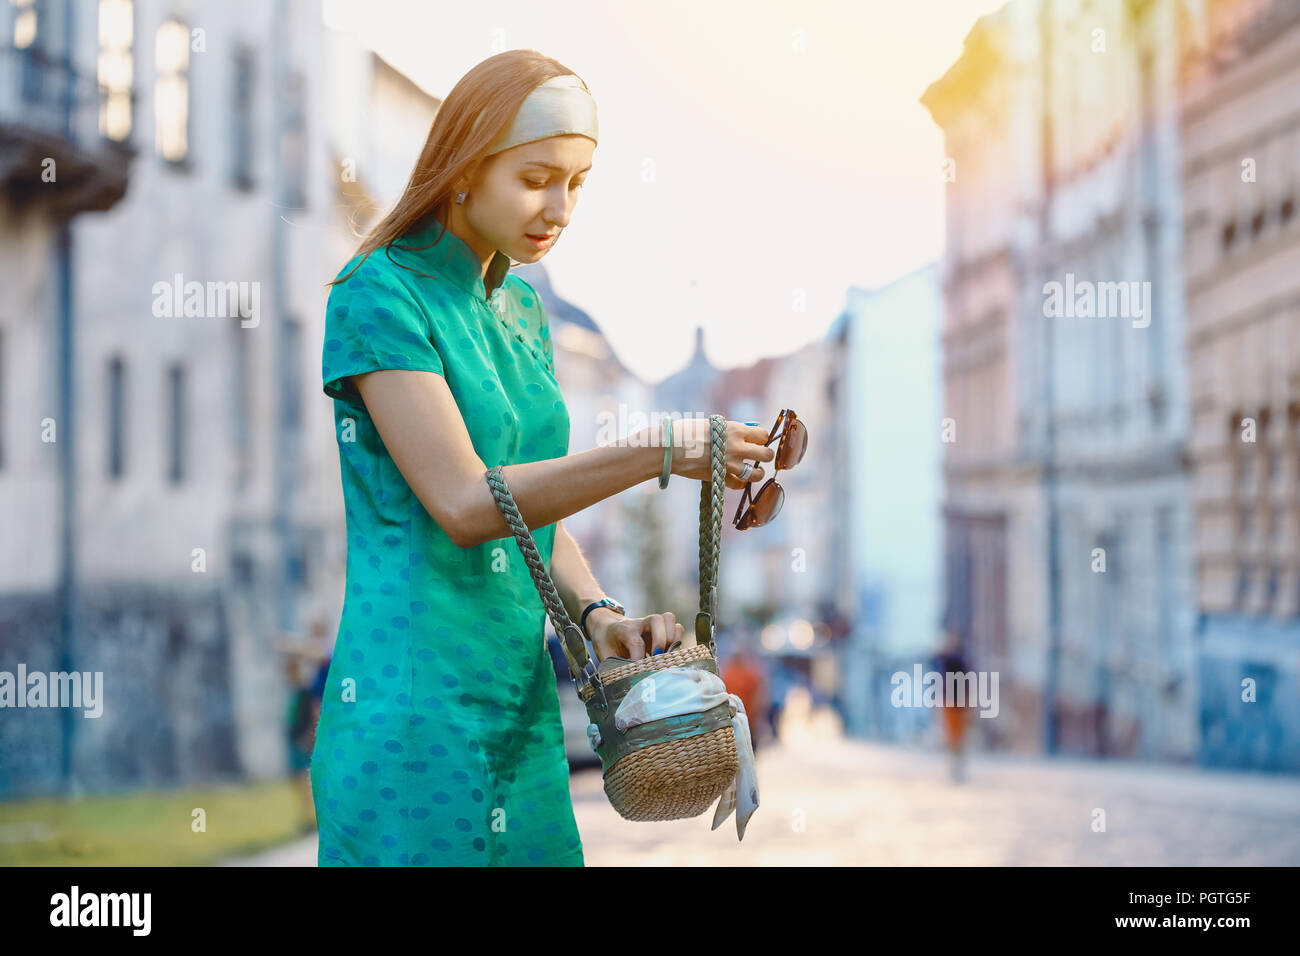 Young beautiful fashionable lady wearing green dress searching for something in her hand bag on a street of the old city. Female fashion. City lifesty - Stock Image